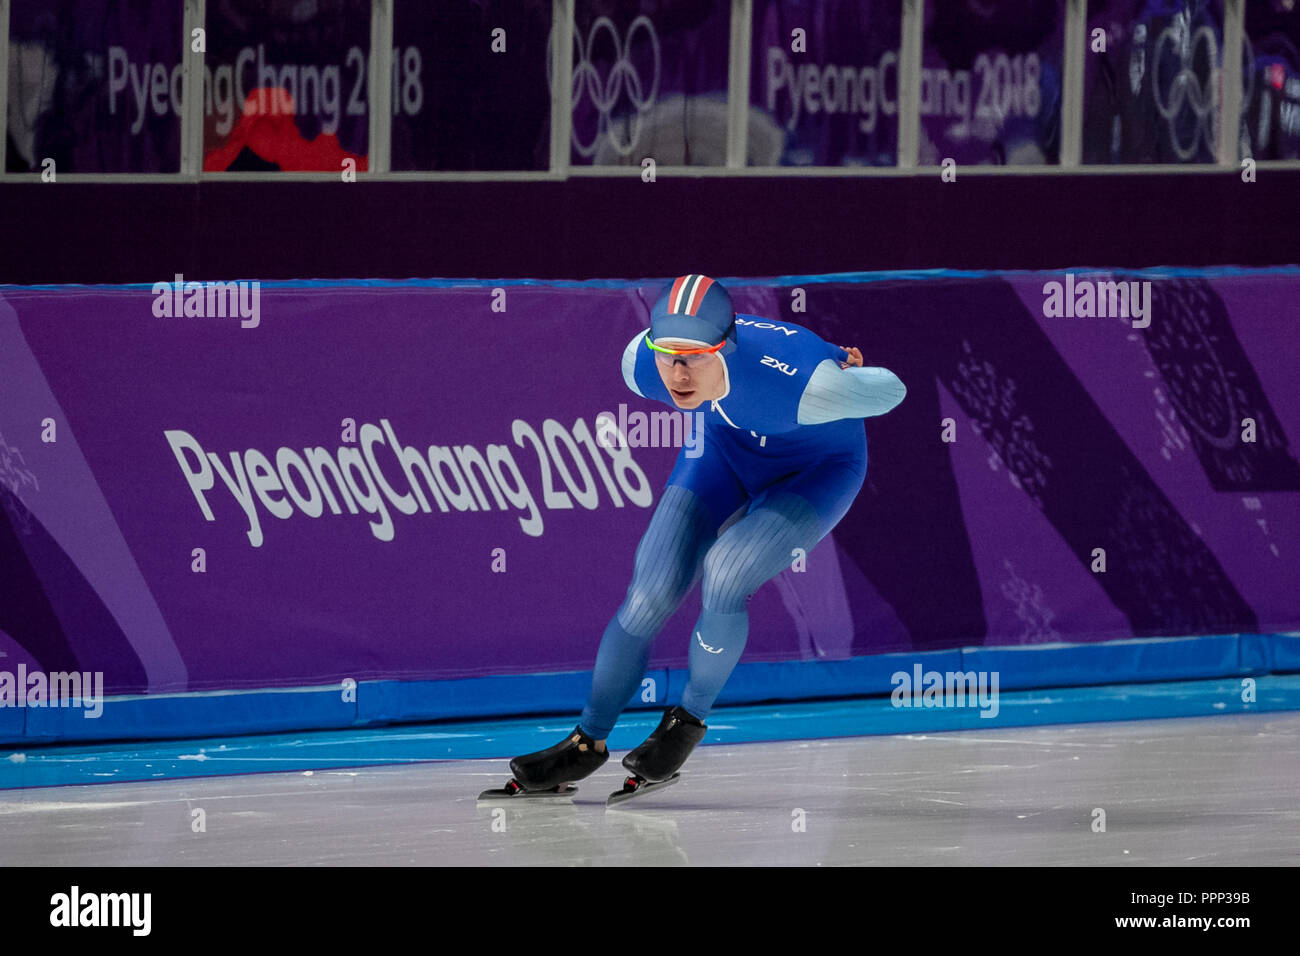 Simen Spieler Nilsen (NOR) competing in the men's  5000m speed skating at the Olympic Winter Games PyeongChang 2018 - Stock Image